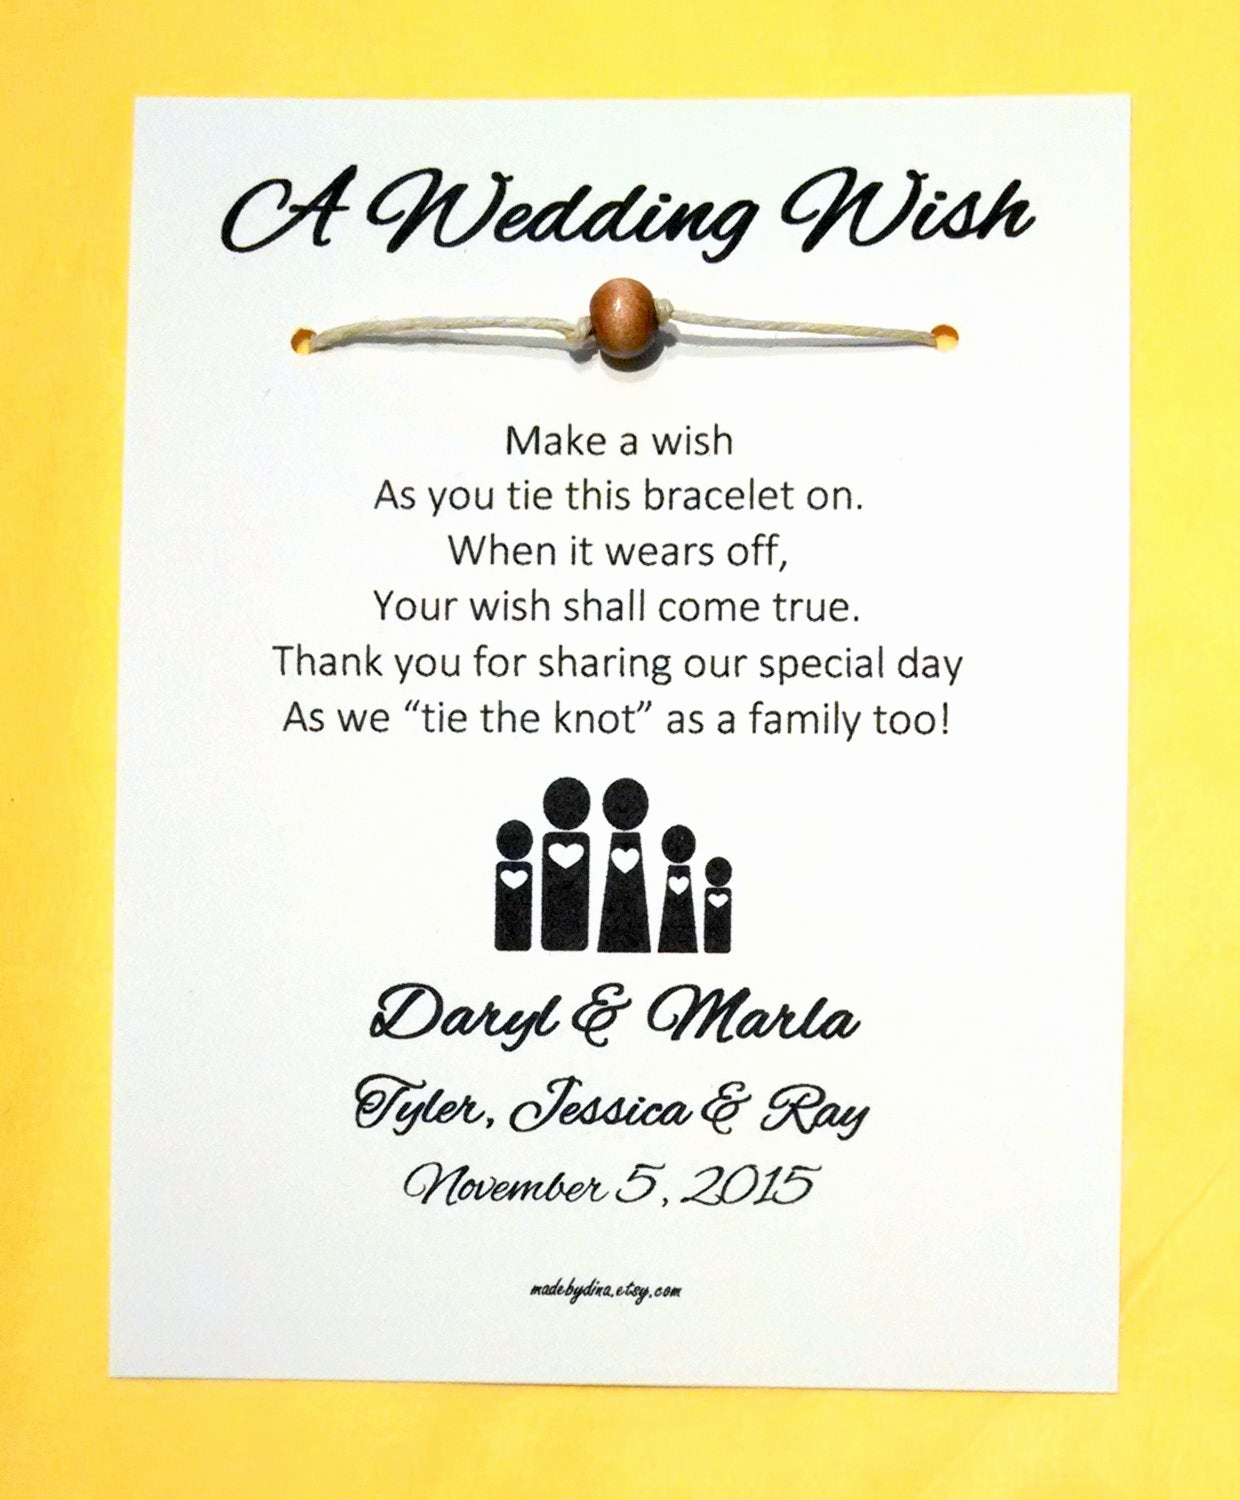 Blended Family Wedding Invitation Wording Best Of Blended Family A Wedding Wish Unity Bead Wish Bracelet